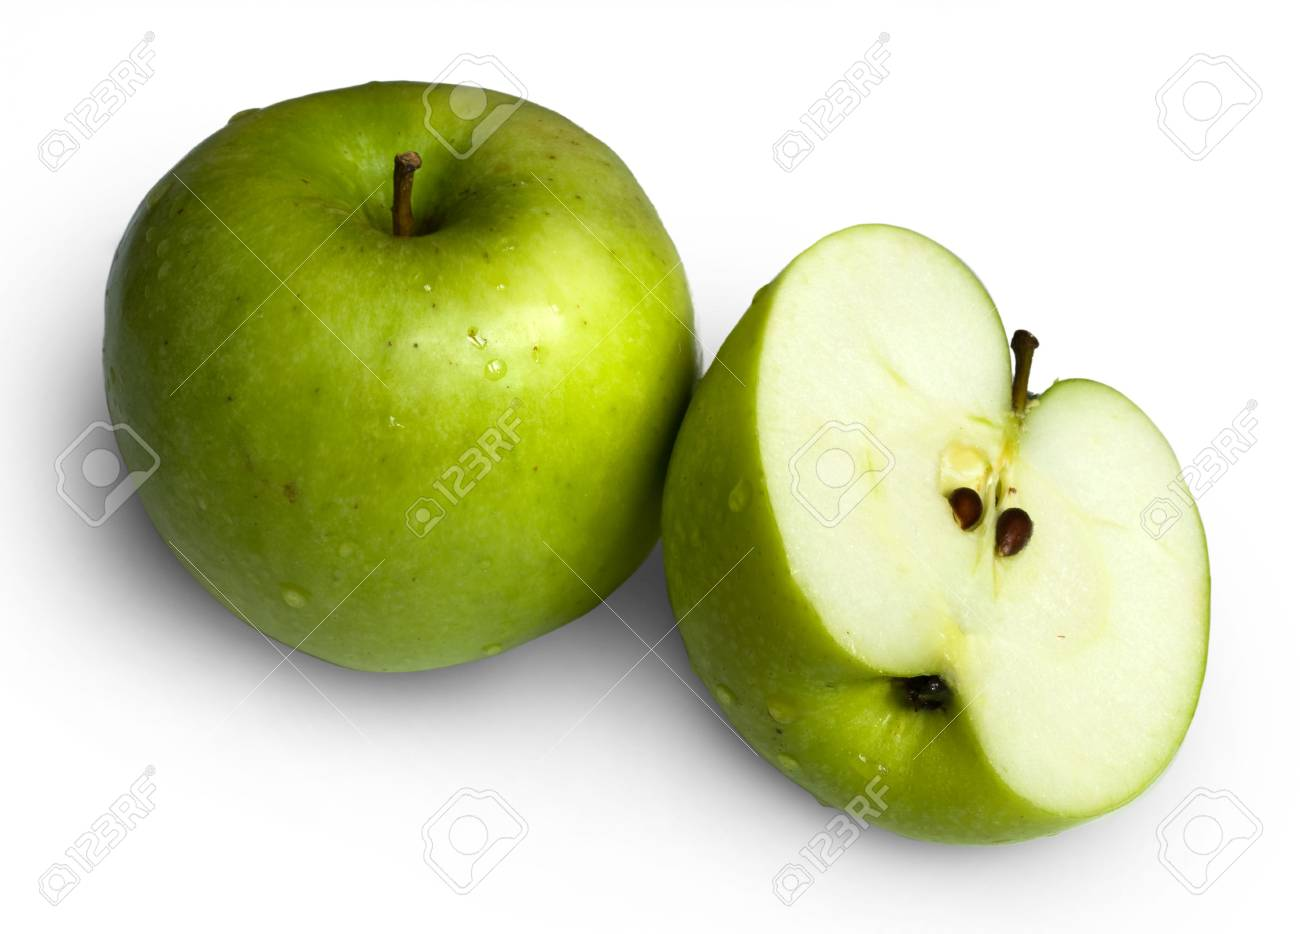 Two green apples isolated on white background Stock Photo - 4582381